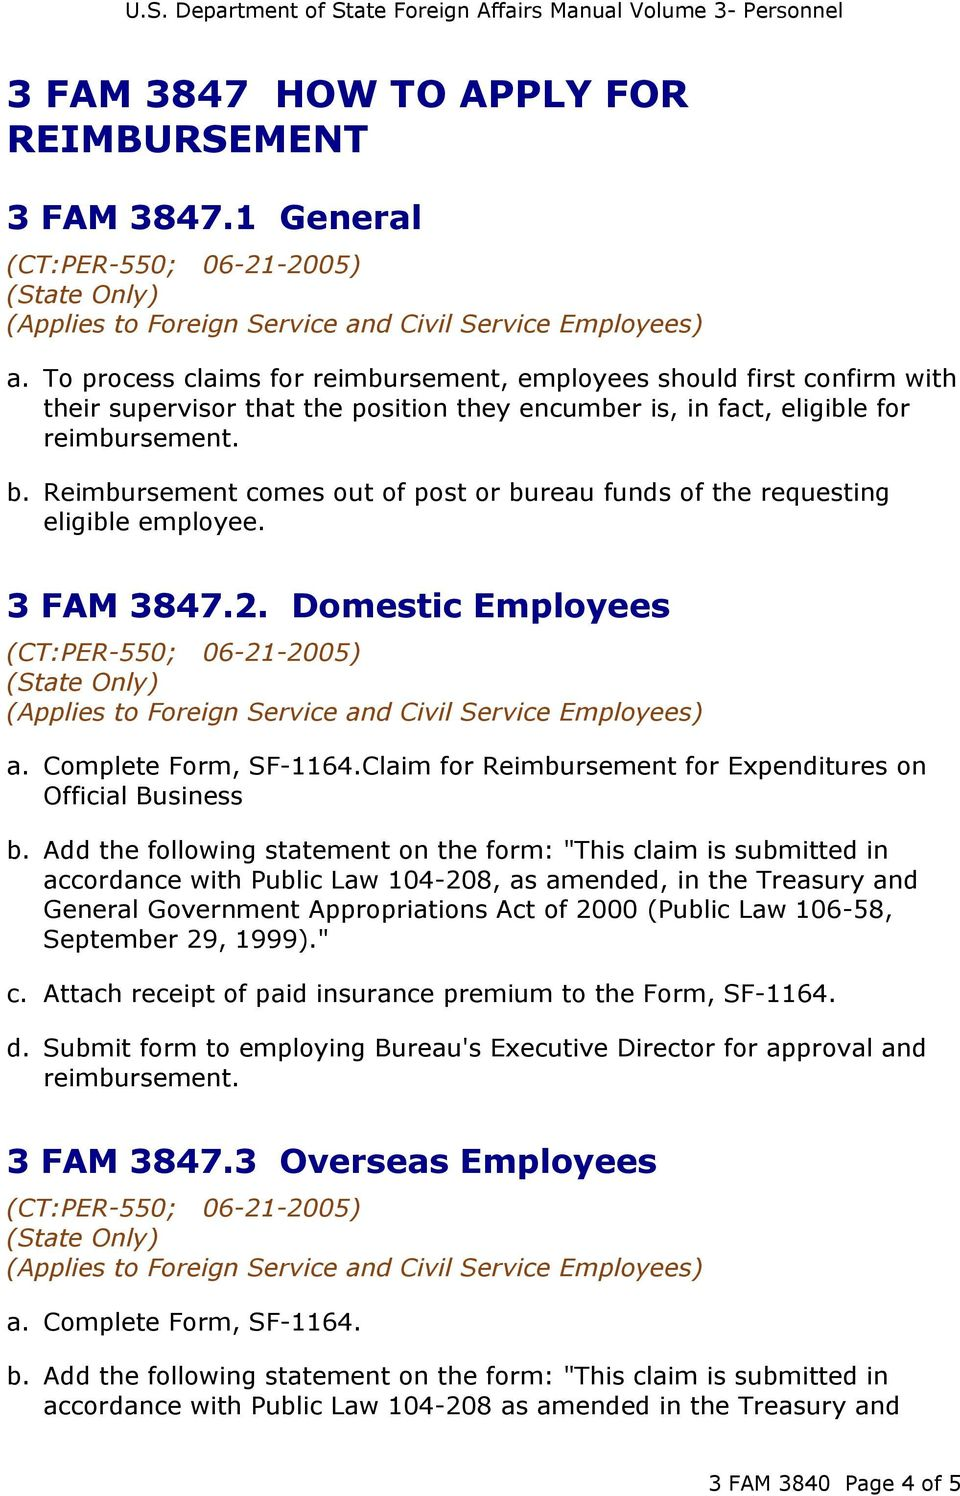 Reimbursement comes out of post or bureau funds of the requesting eligible employee. 3 FAM 3847.2. Domestic Employees a. Complete Form, SF-1164.